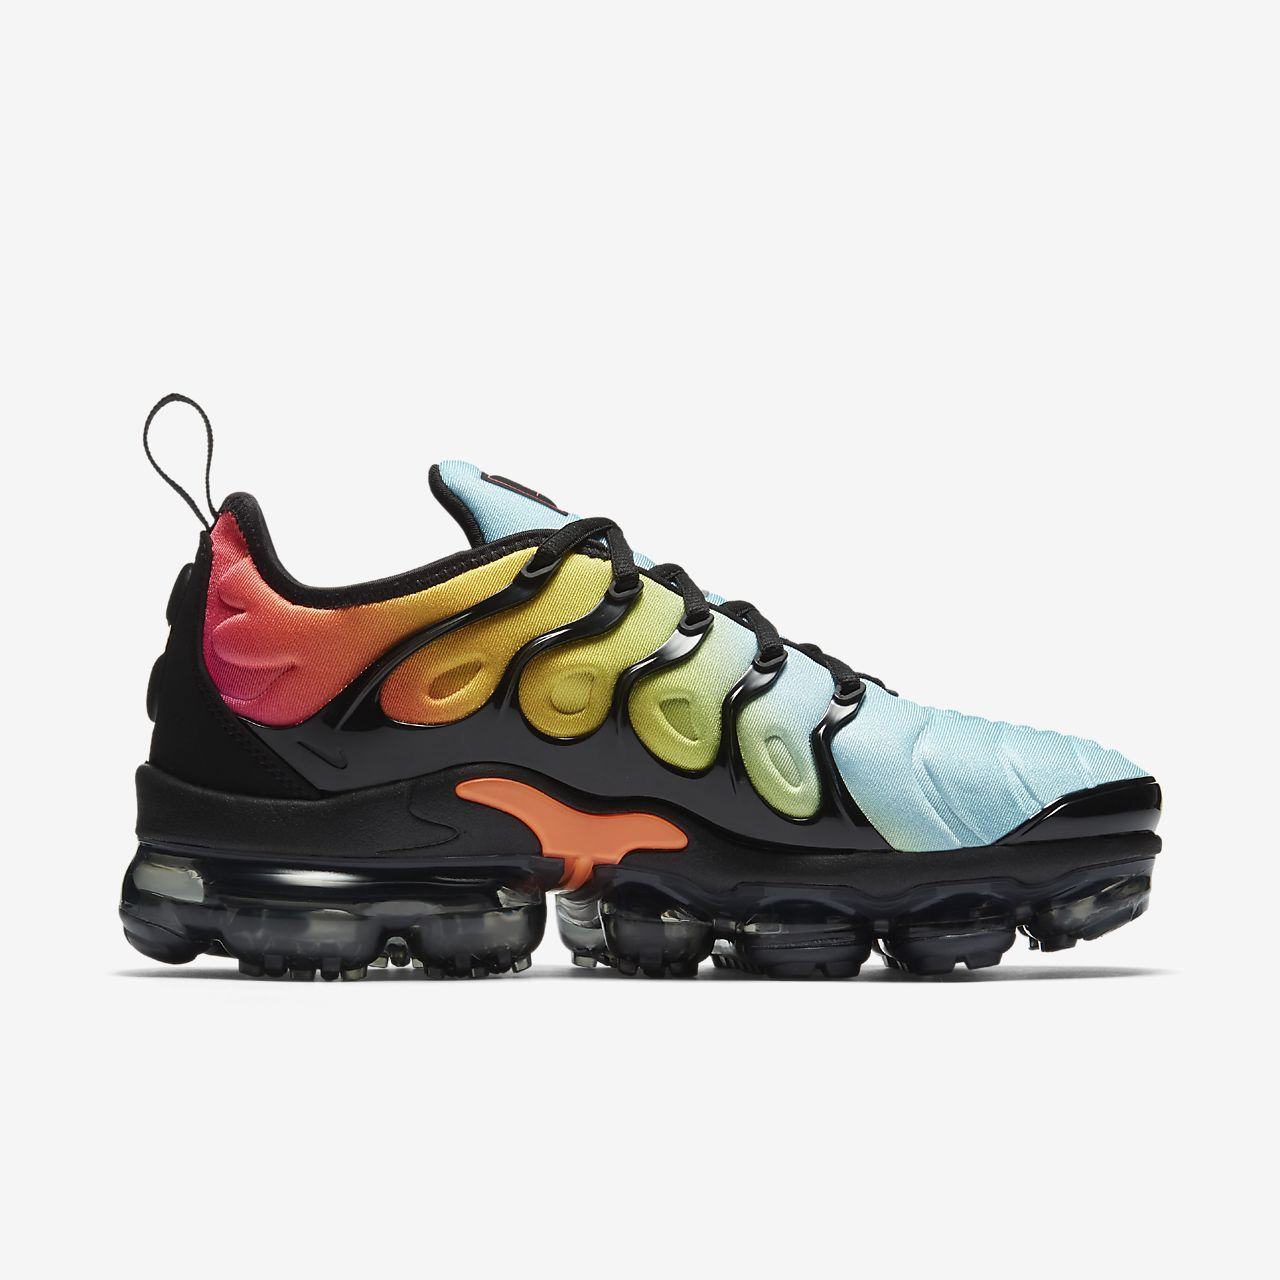 a8f2a055c29f Air VaporMax Plus Women s Shoe in 2019